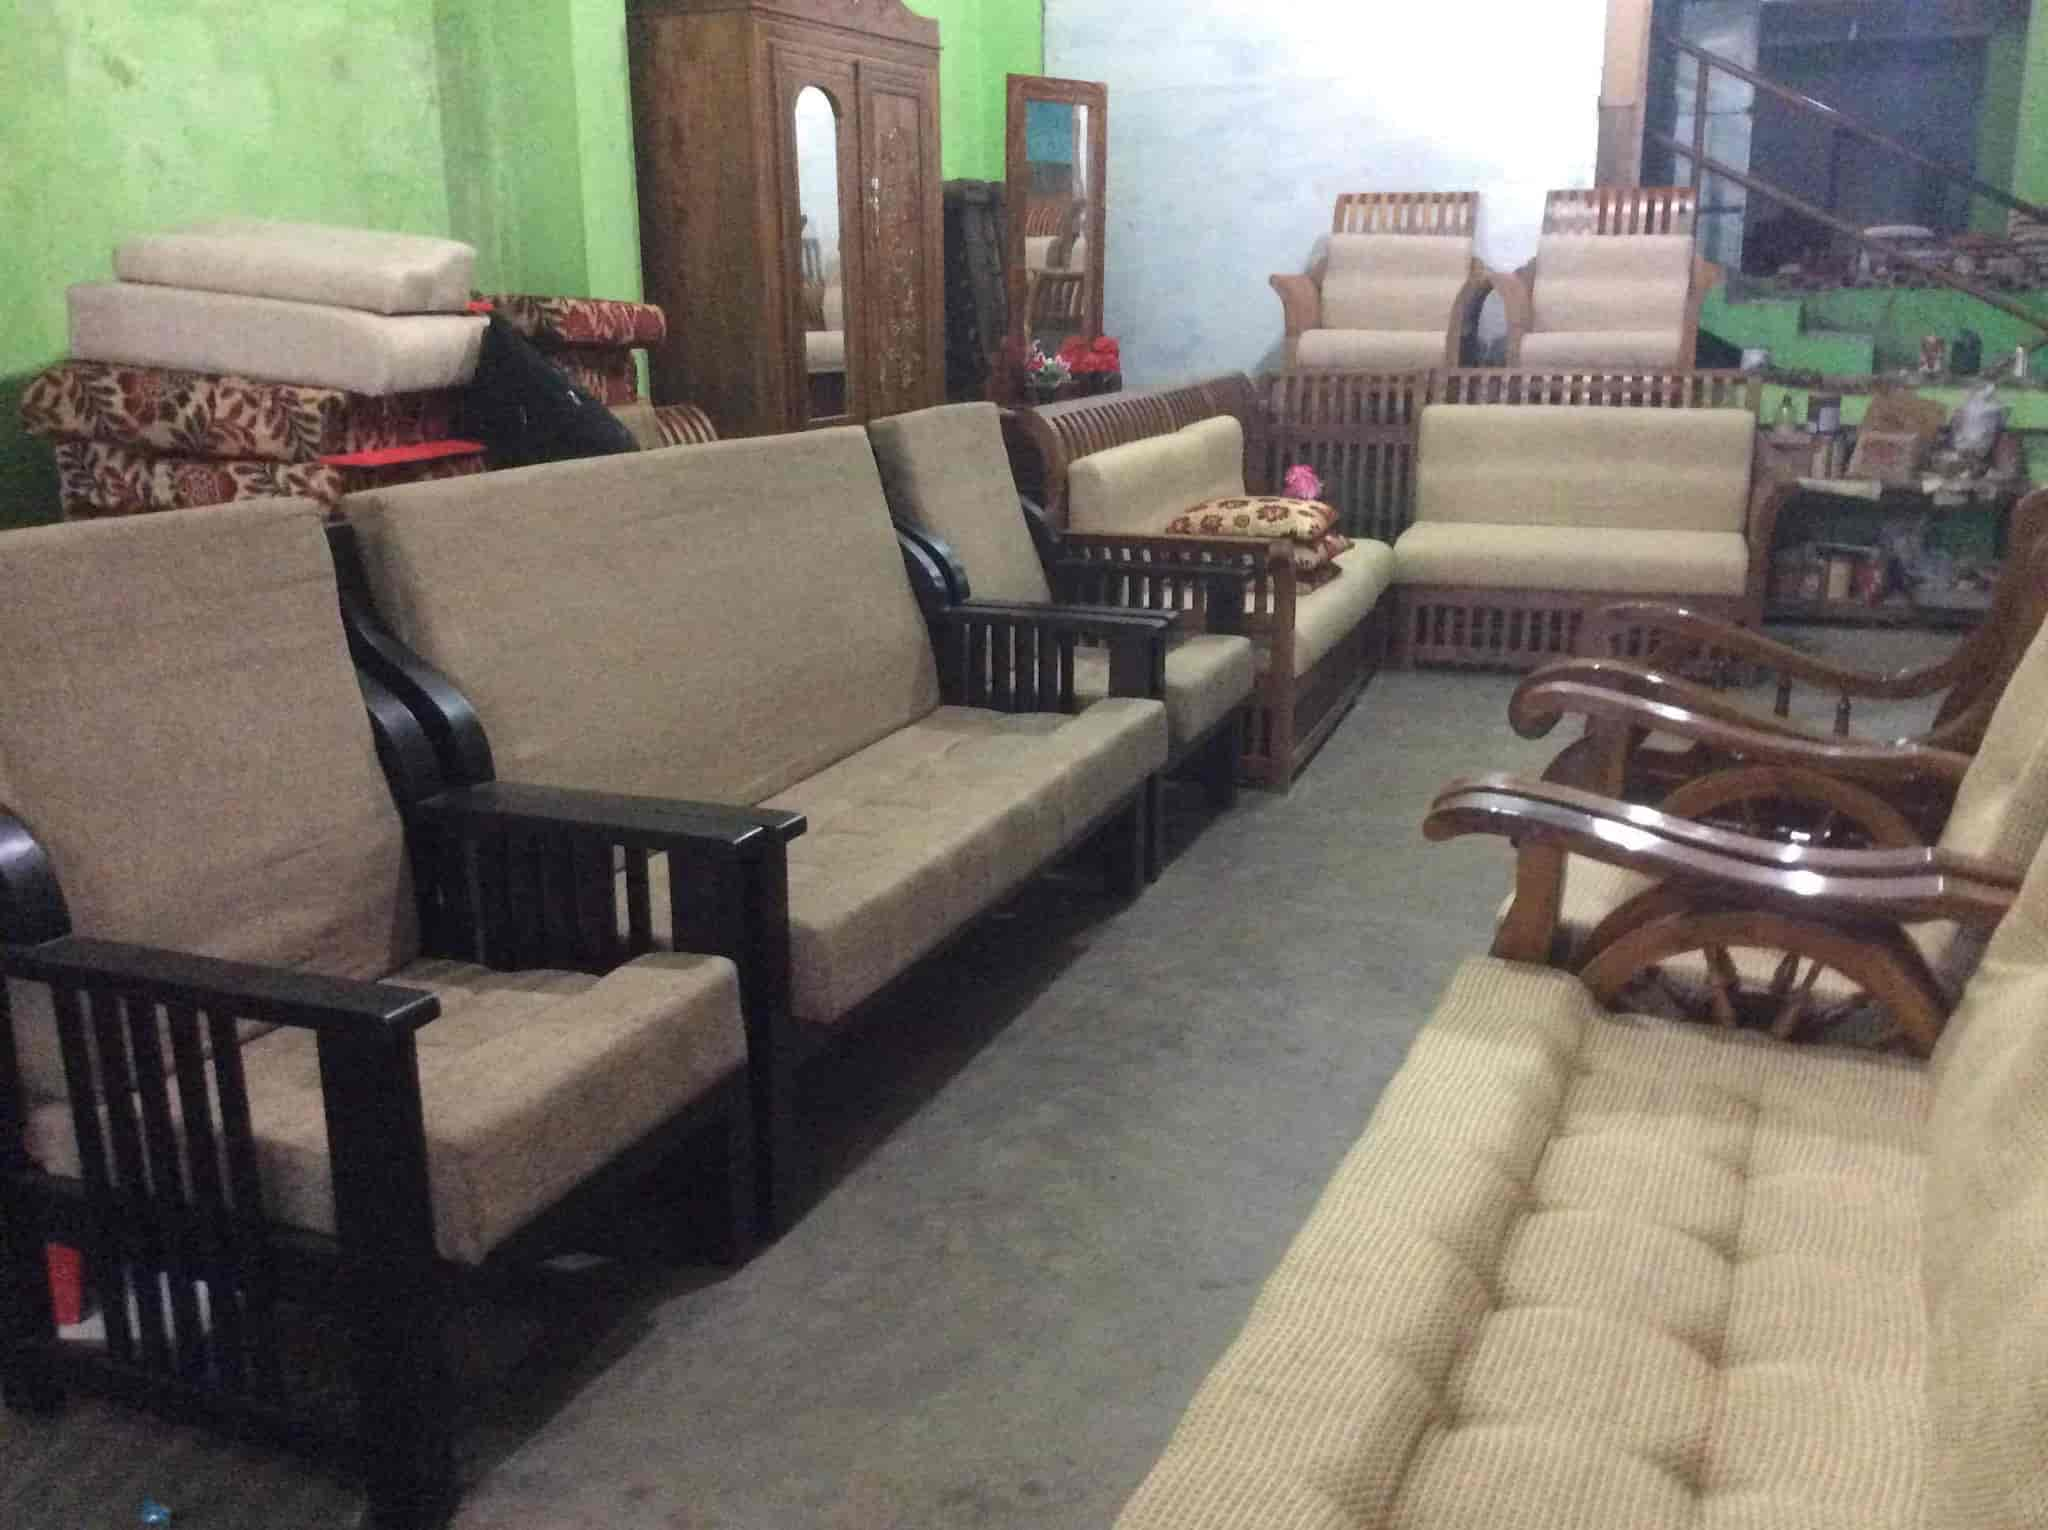 Idea Furniture Photos Pala Town Kottayam Pictures Images